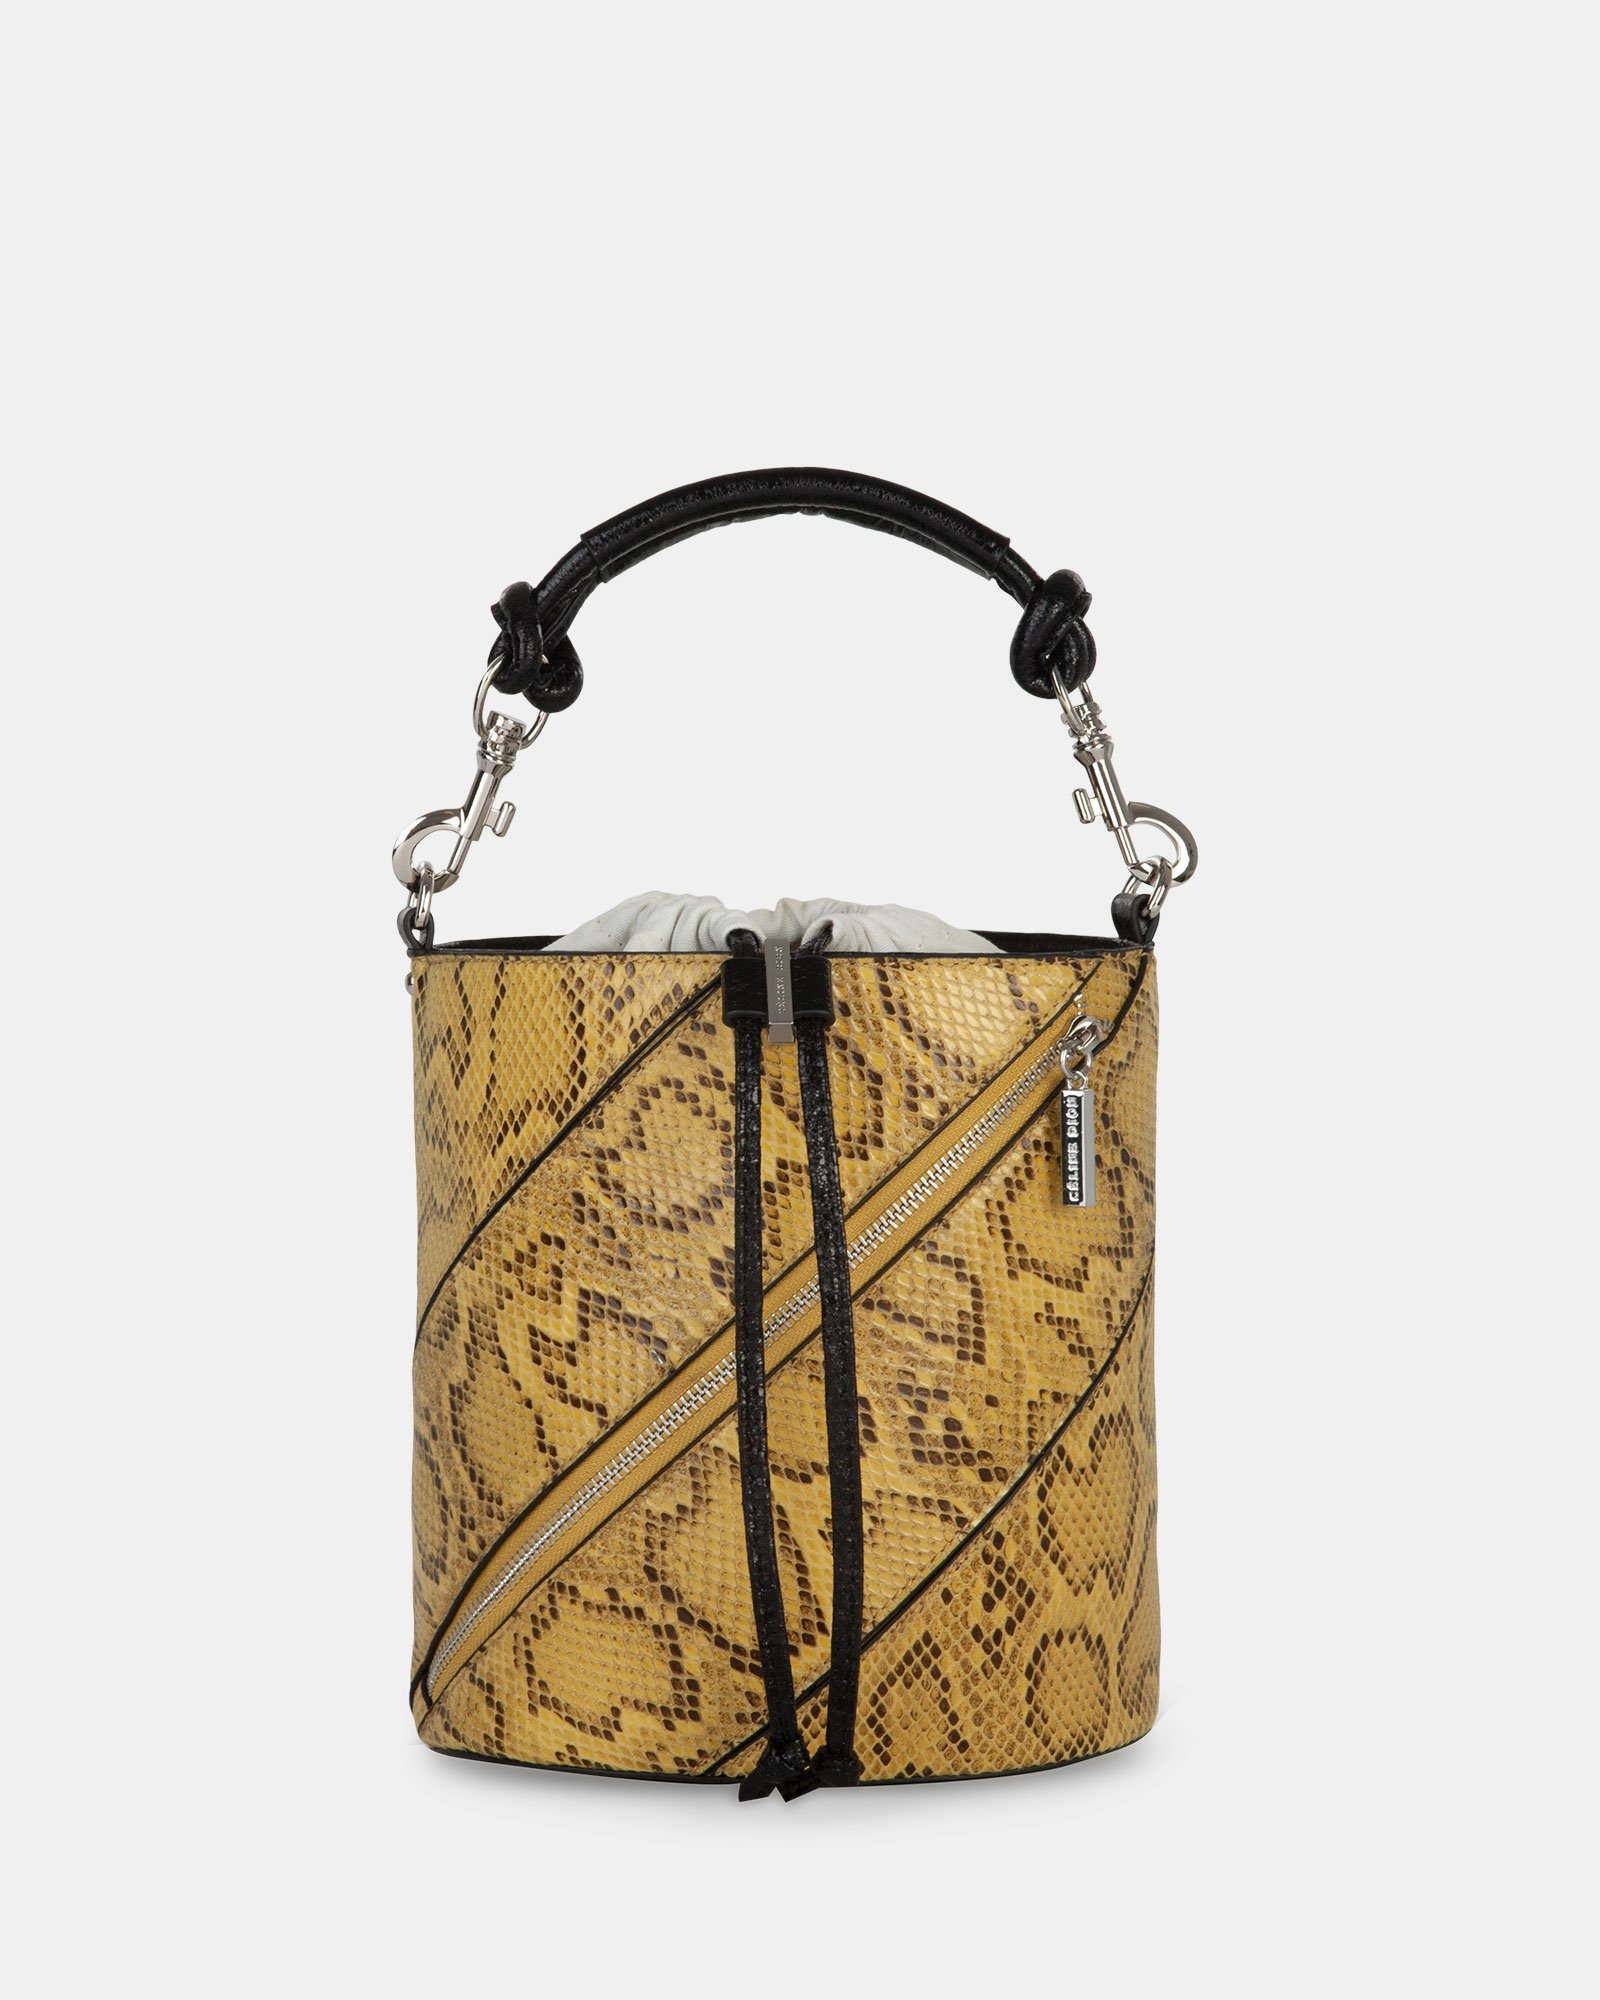 Vivo - Hobo bag Leather-like & Canvas with Adjustable and detachable crossbody strap - Yellow - Céline Dion - Zoom